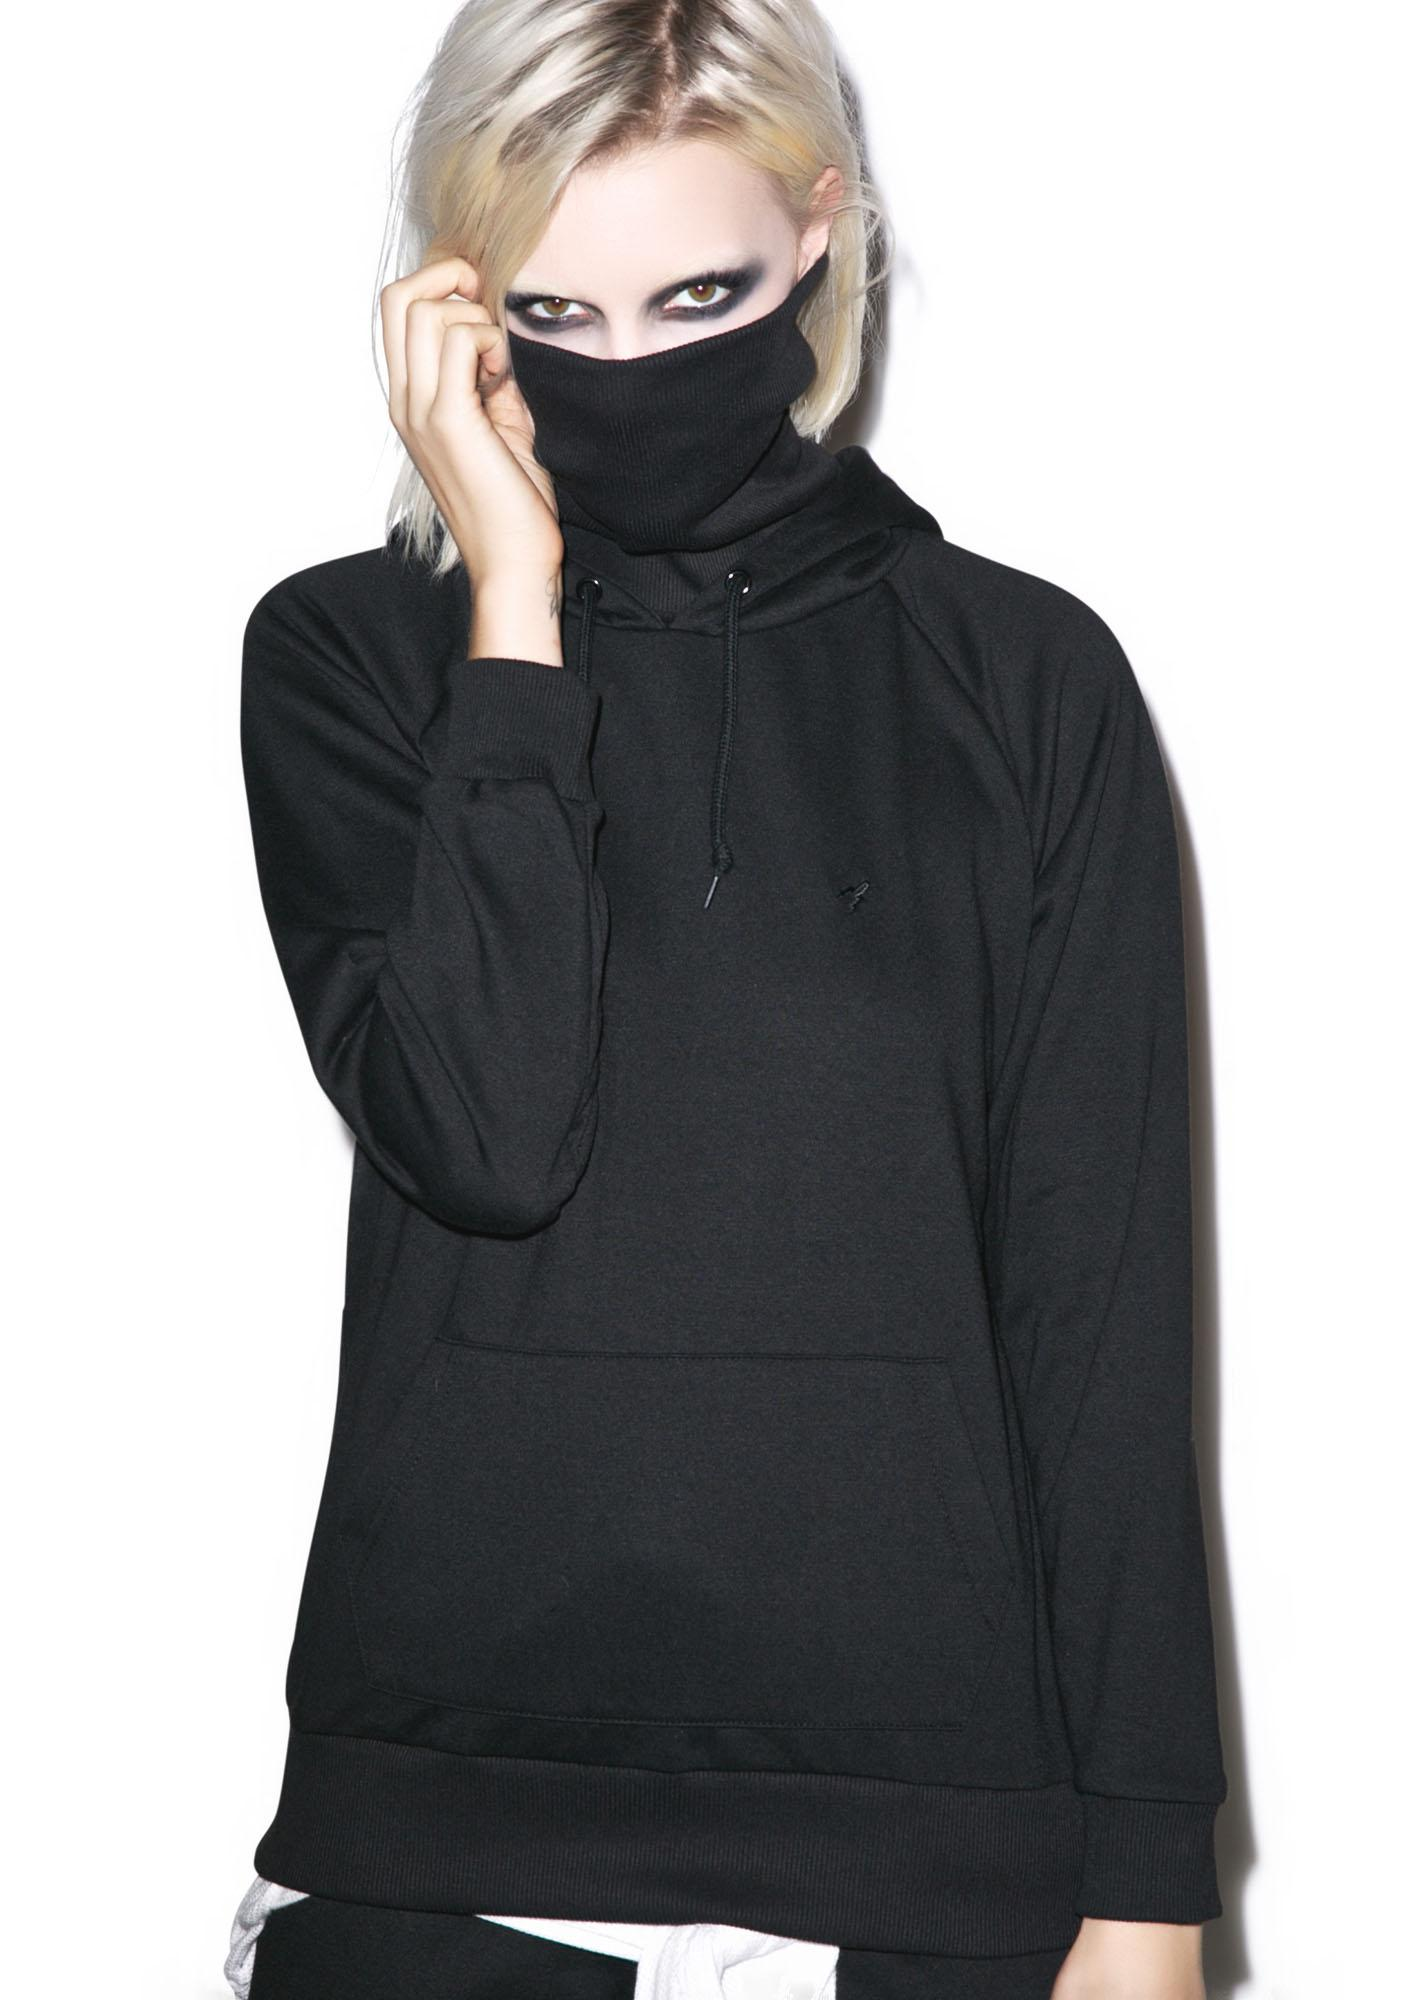 Shop from + unique Ninja Hoodies and Sweatshirts on Redbubble. Pre-shrunk, anti-pill fleece in lightweight and heavy-and-warm options.